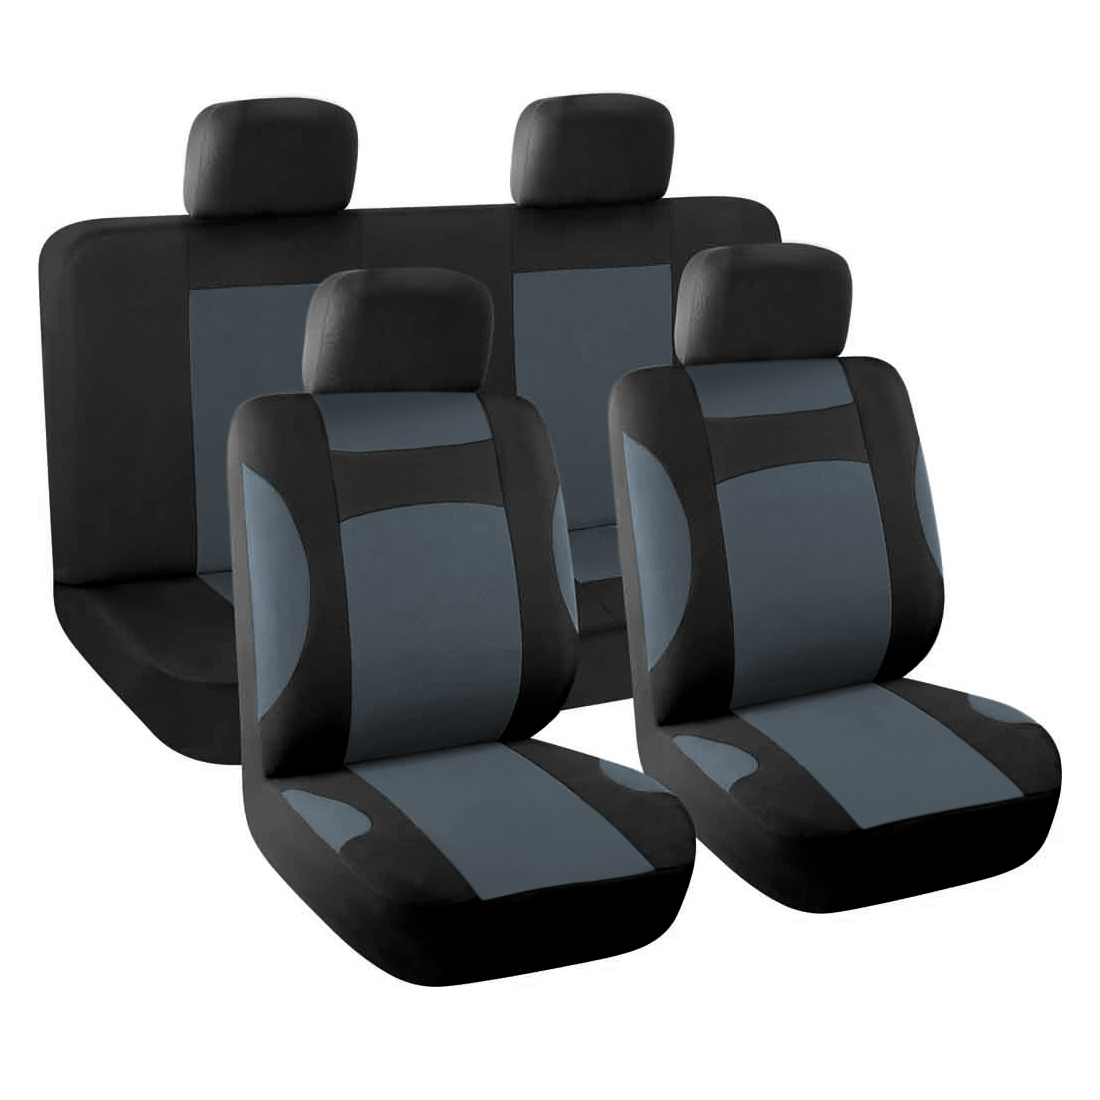 8 piece New Car Seat Covers Full Set for Auto w/ Head Rests Gray